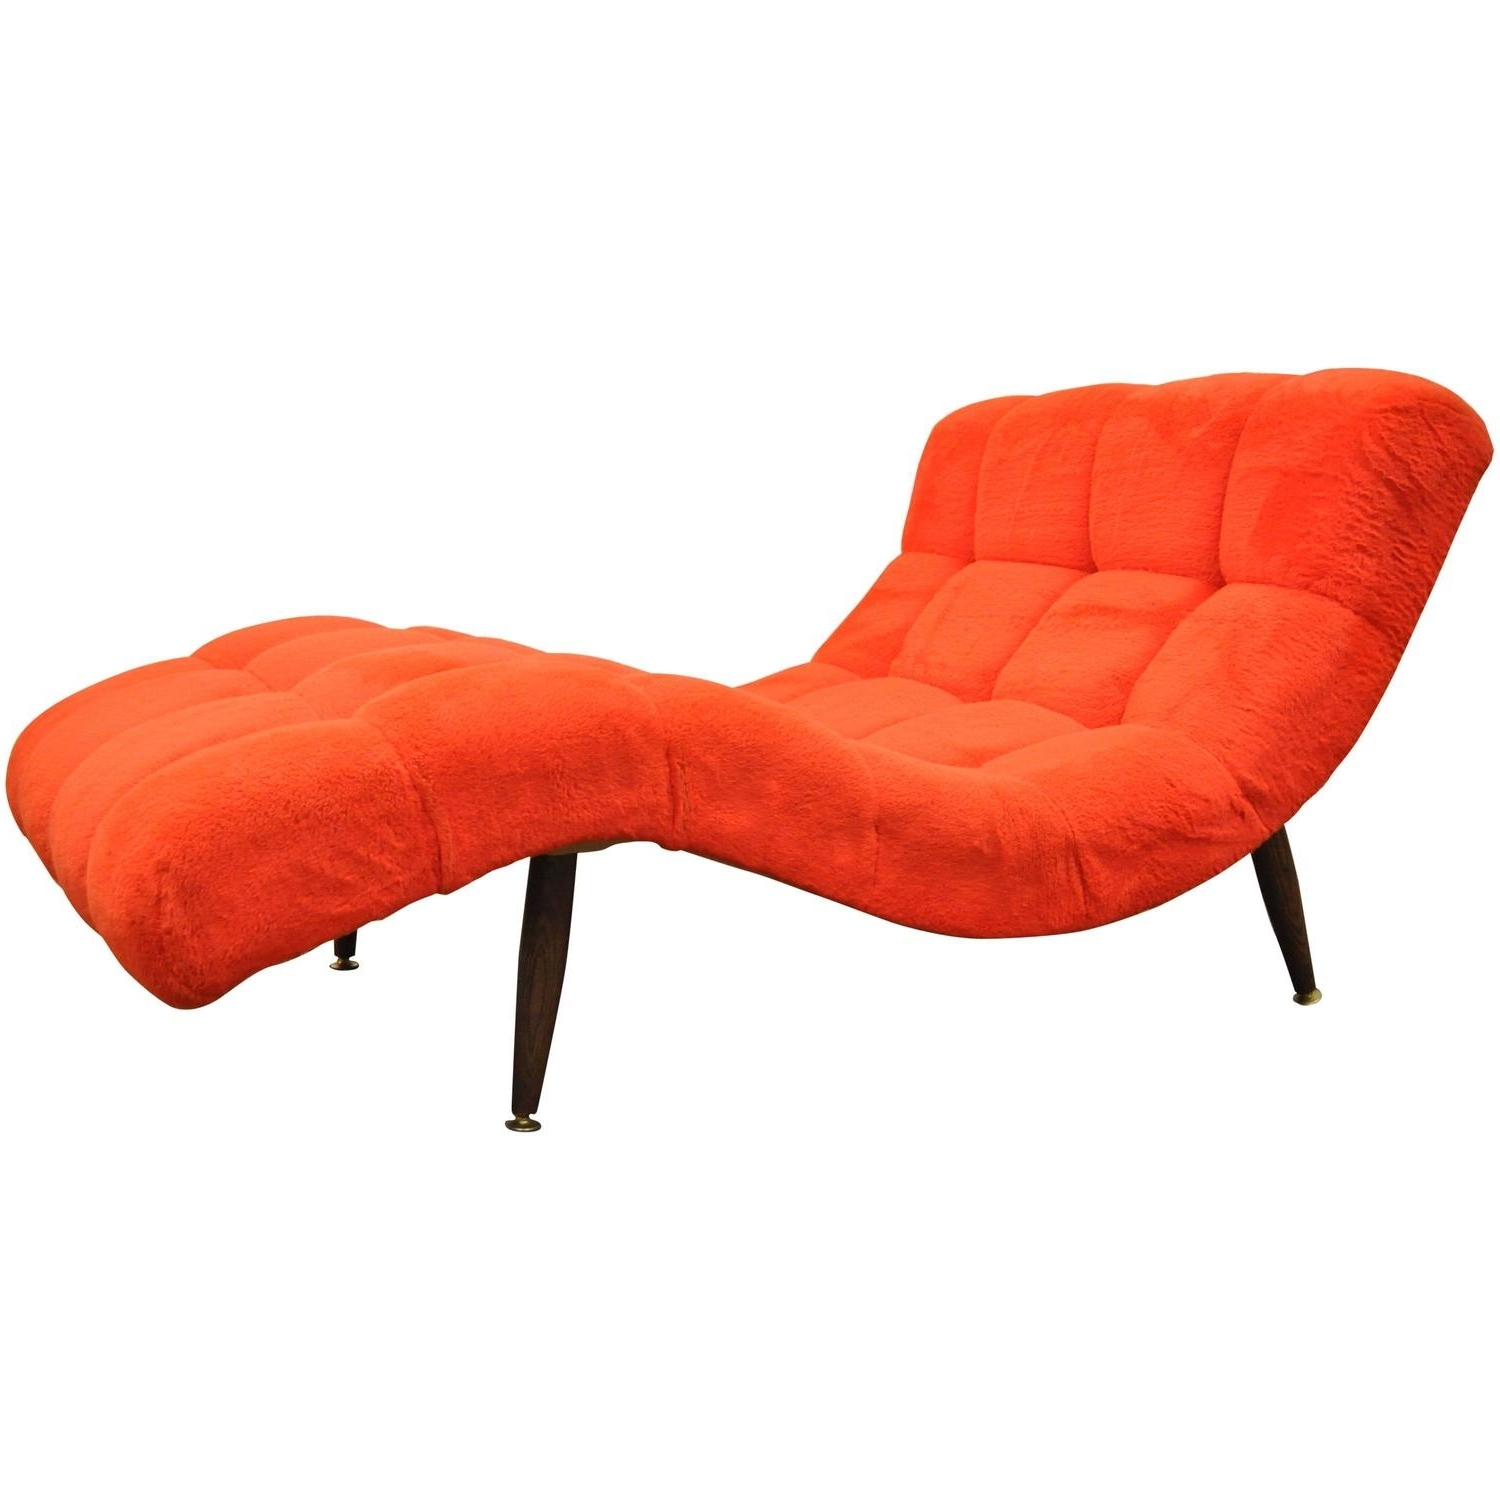 Vintage Mid Century Modern Double Wide Wave Chaise Lounge For Sale Regarding Recent Mid Century Modern Chaise Lounges (View 14 of 15)